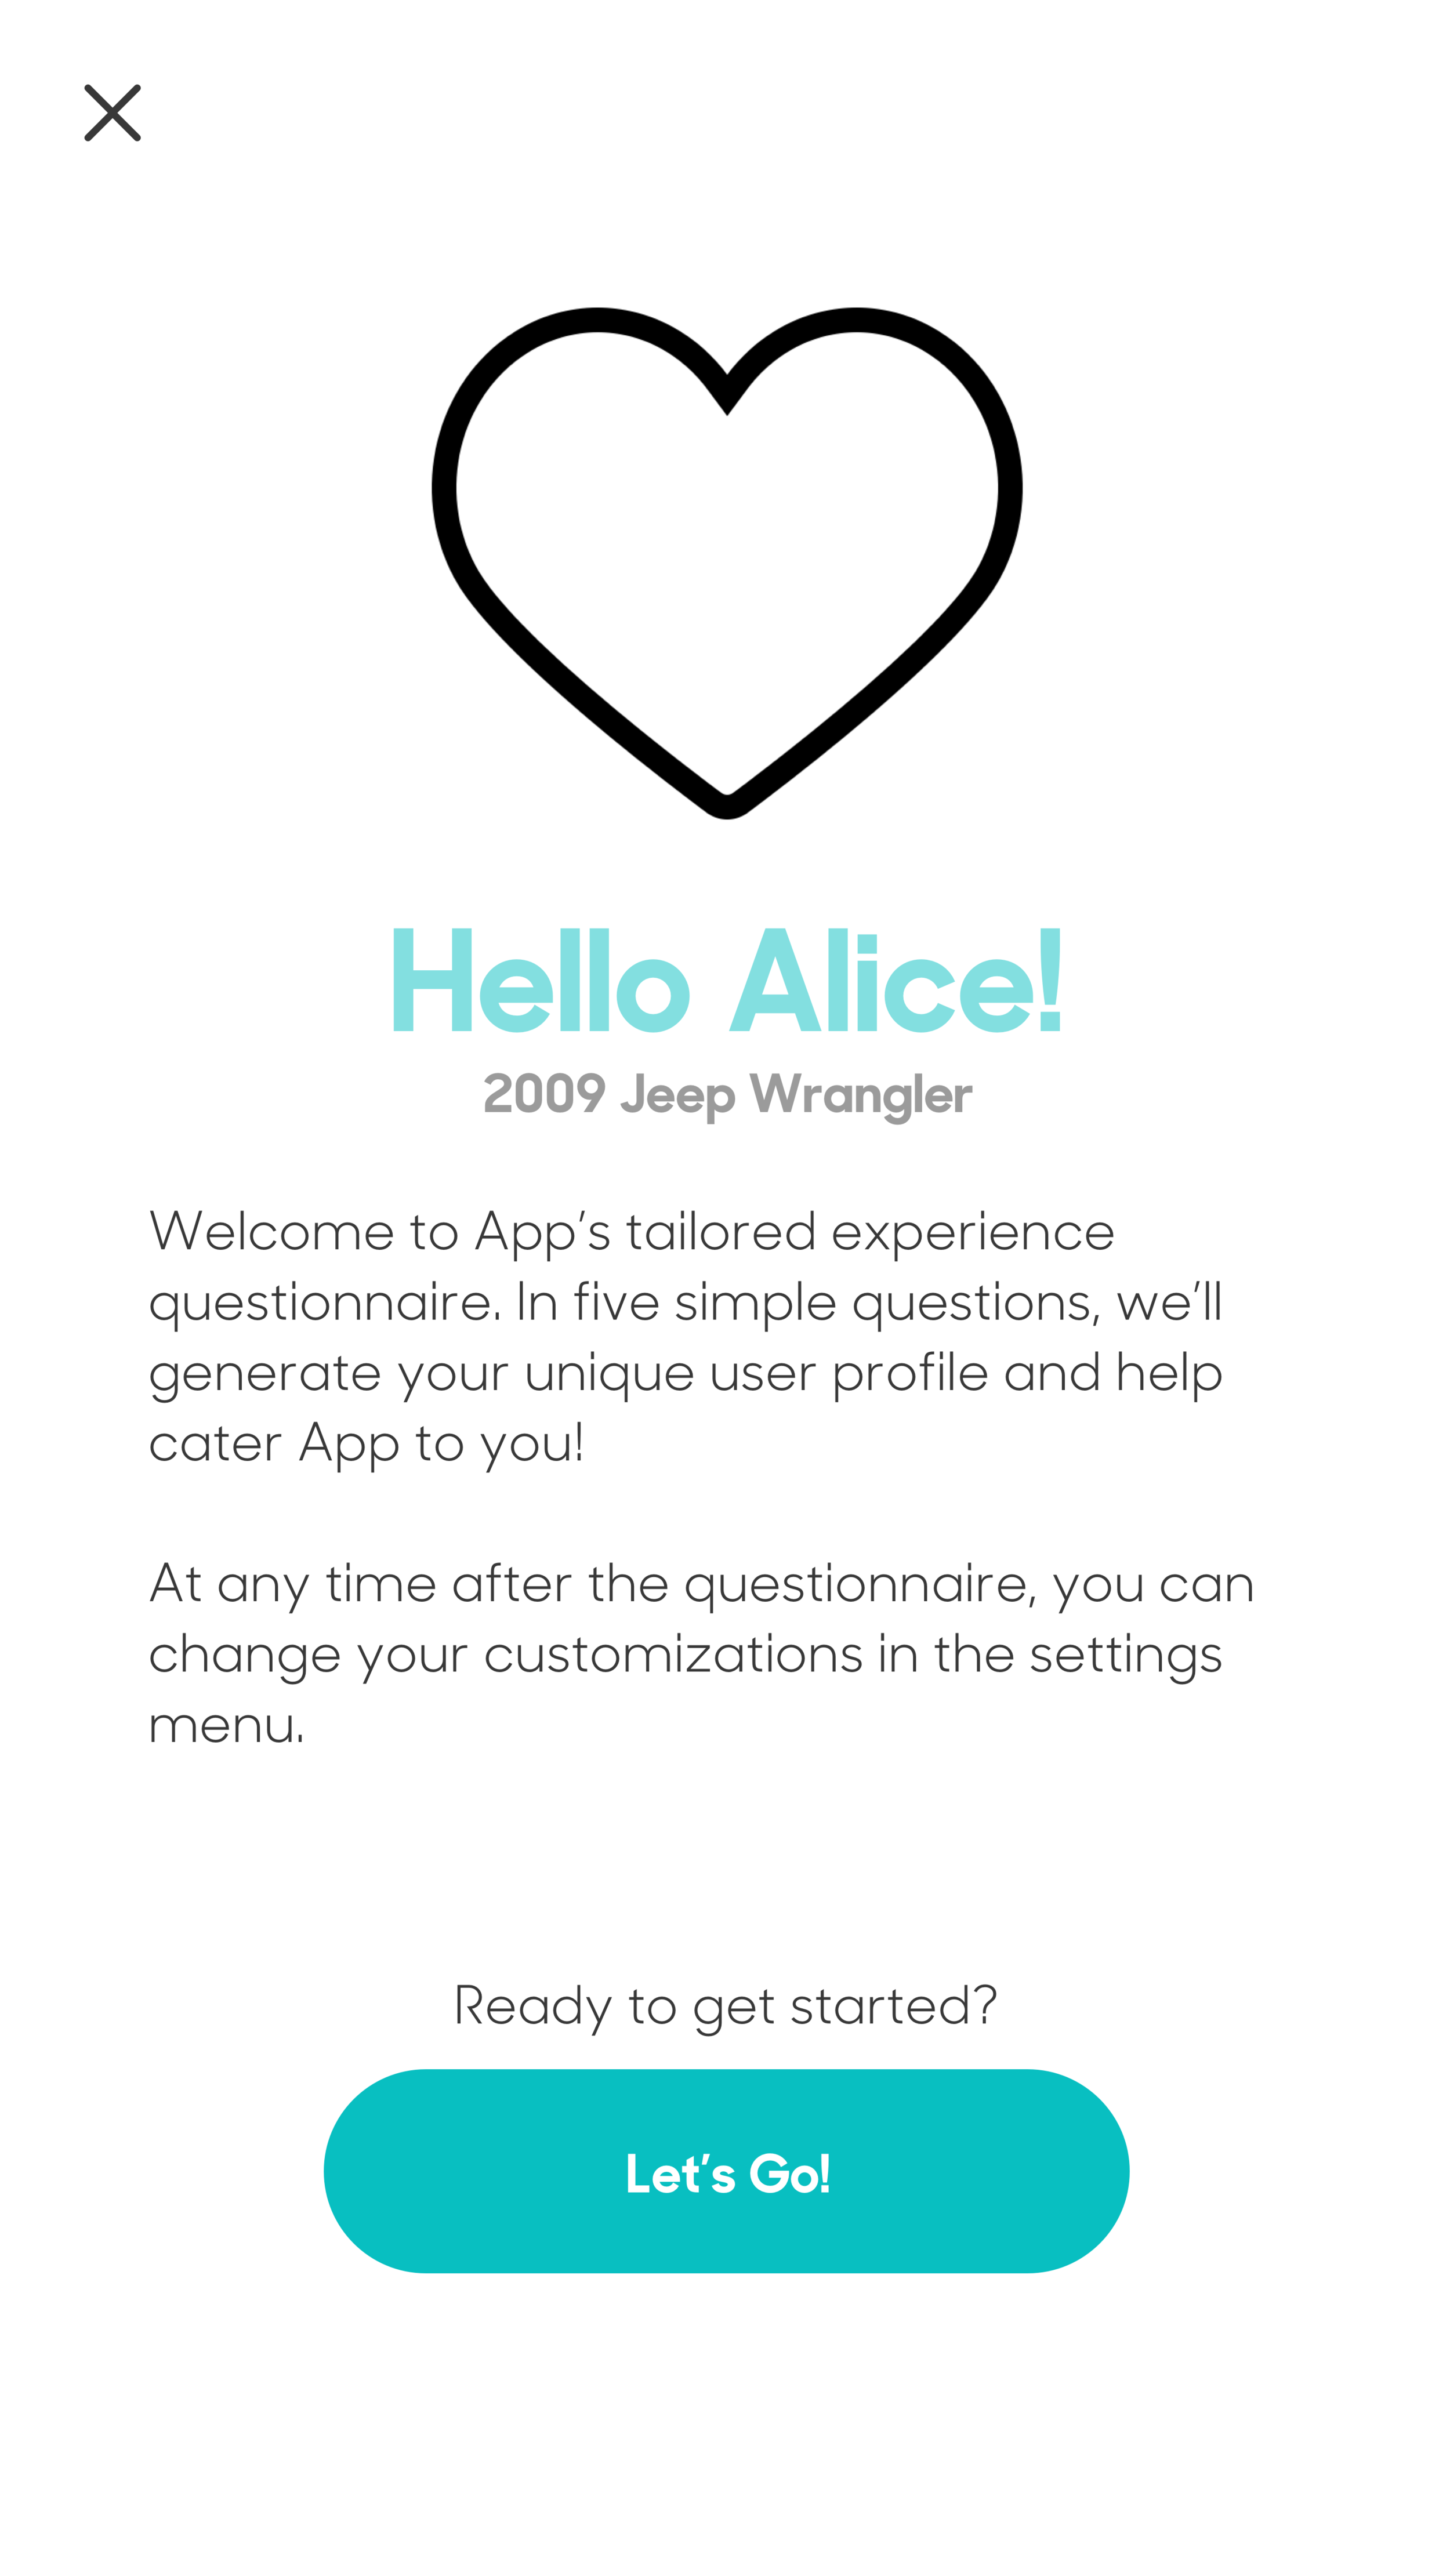 Intro screen. The users would be seeing this when they launch the app the first time.